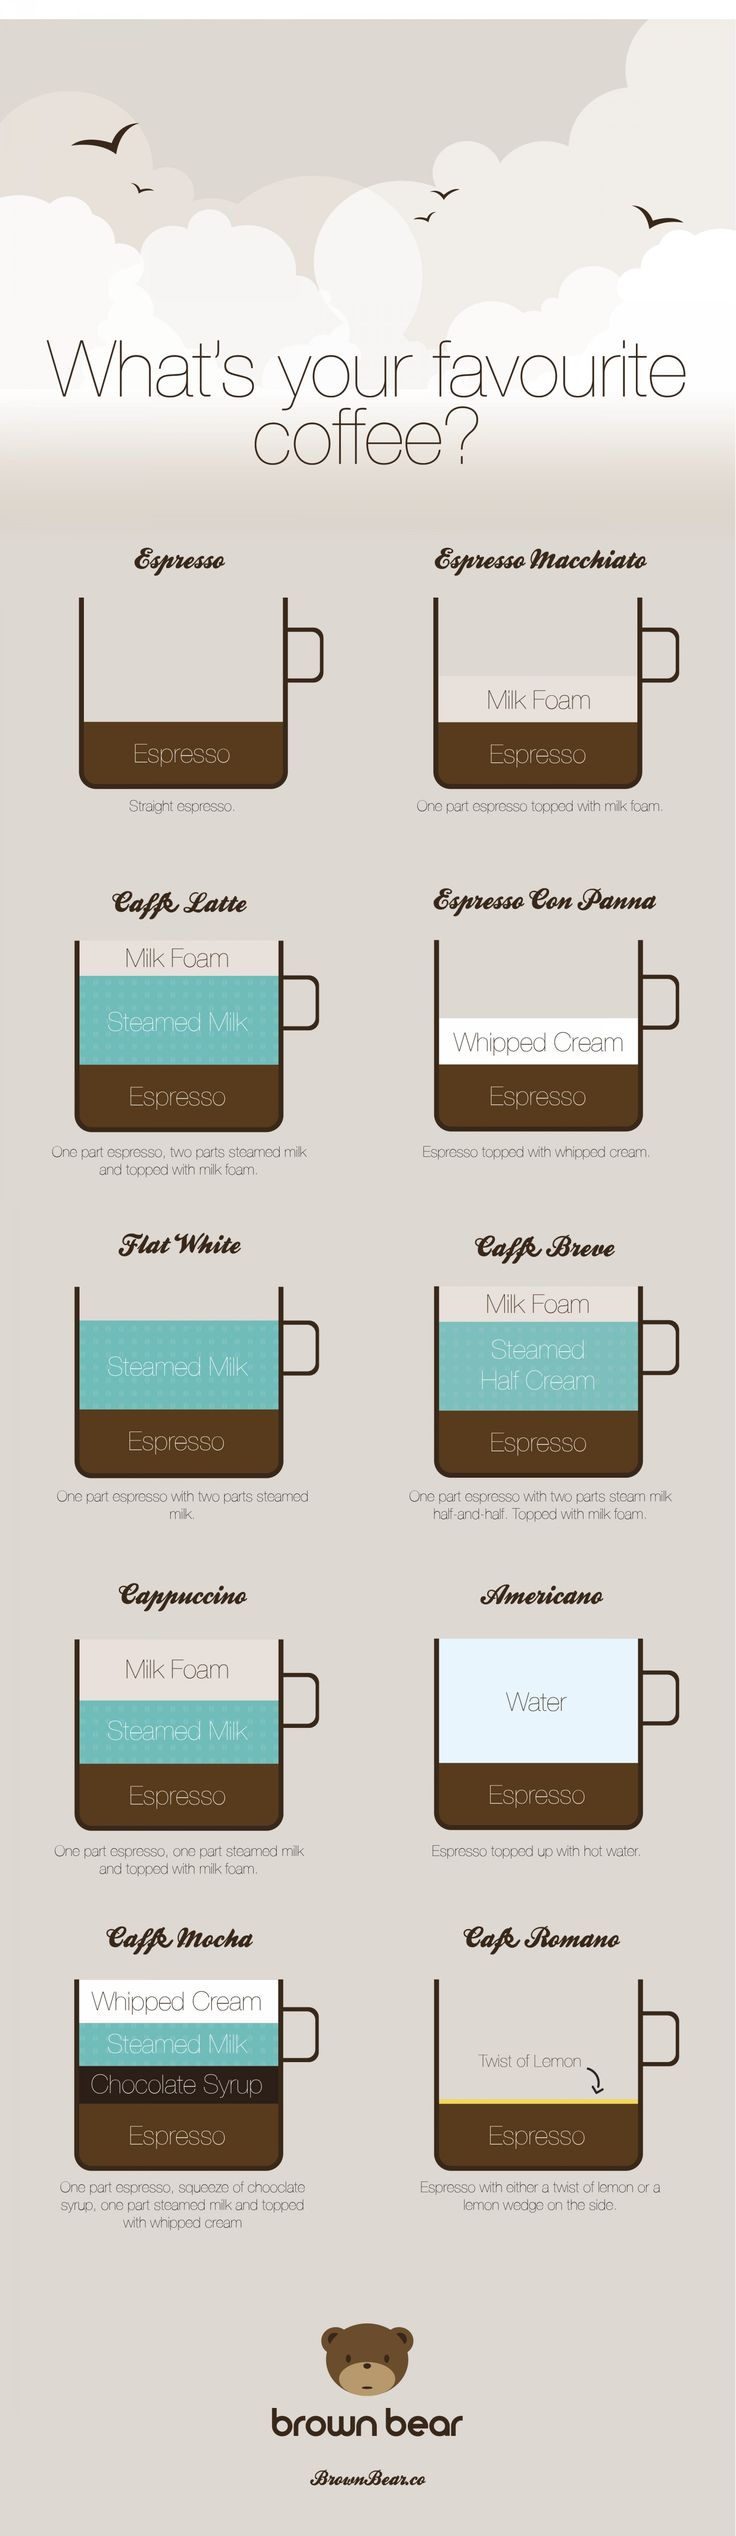 Best 25+ Coffee names ideas on Pinterest | Different coffee drinks ...